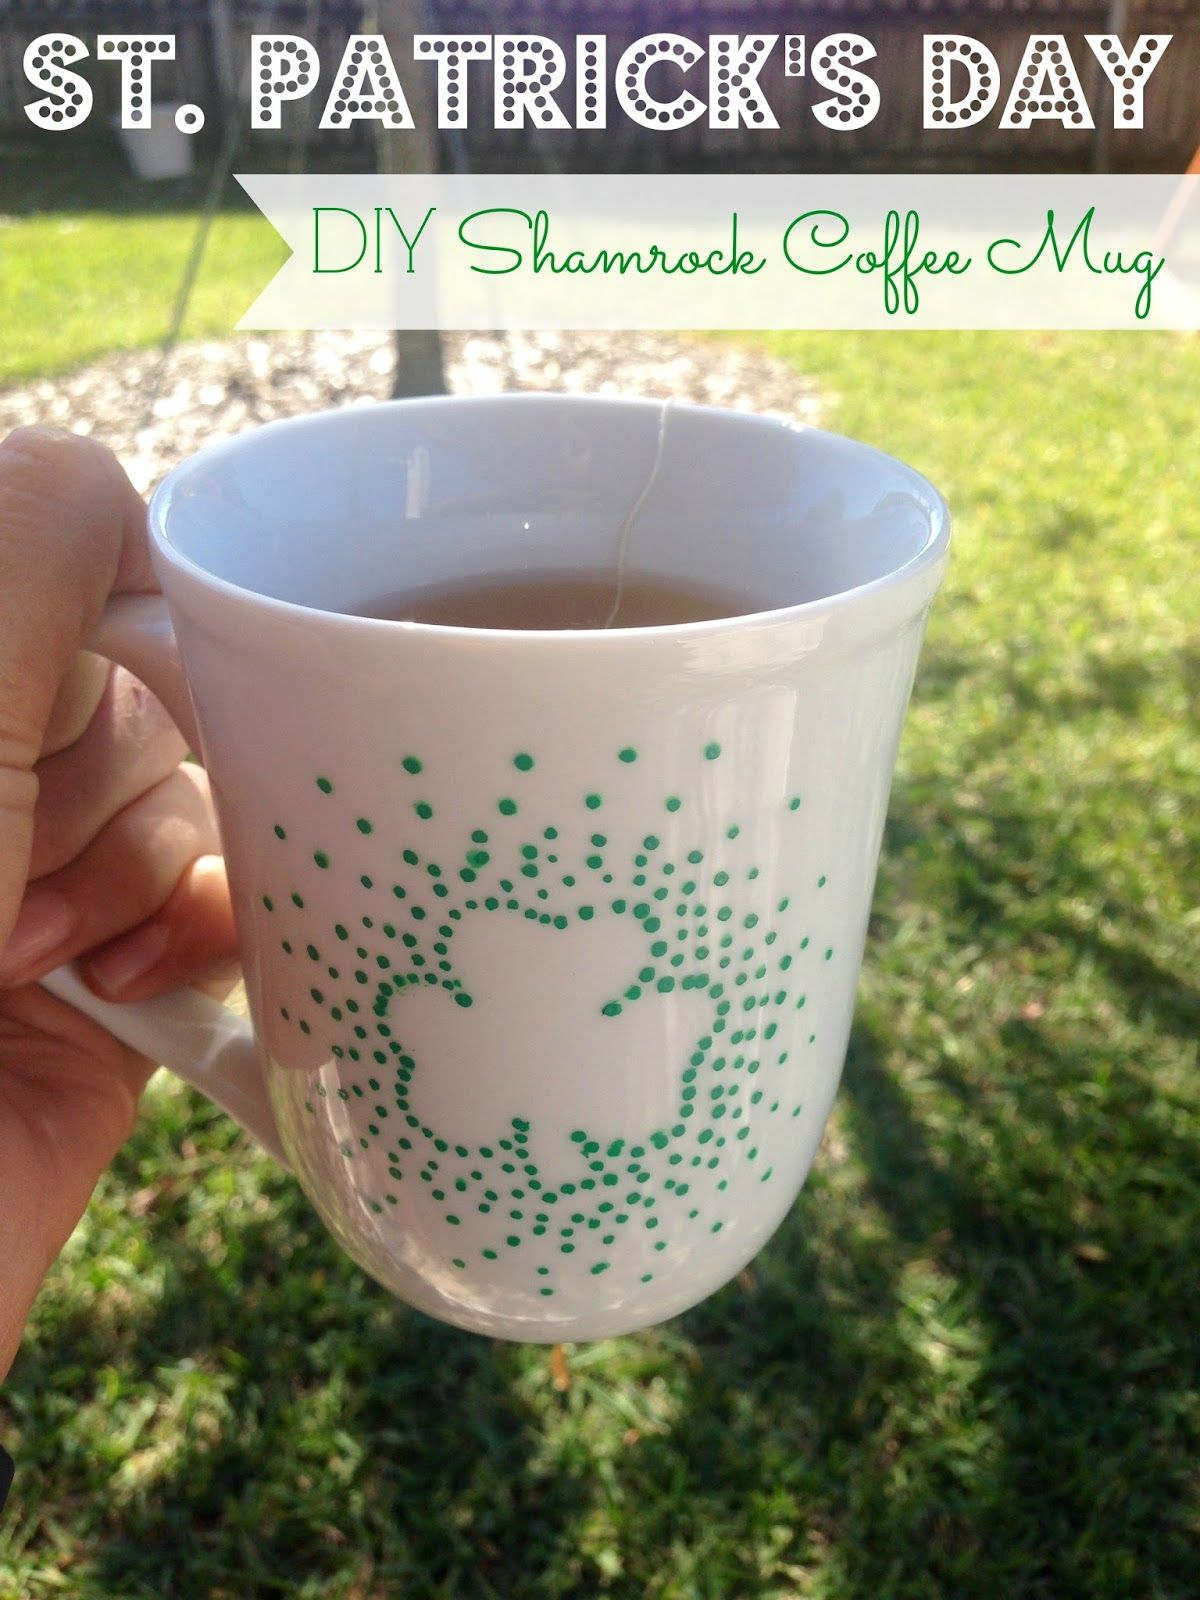 090e787af DIY St. Patrick's Day Shamrock Coffee Mug - this mug is so simple to make,  you won't be able to resist!